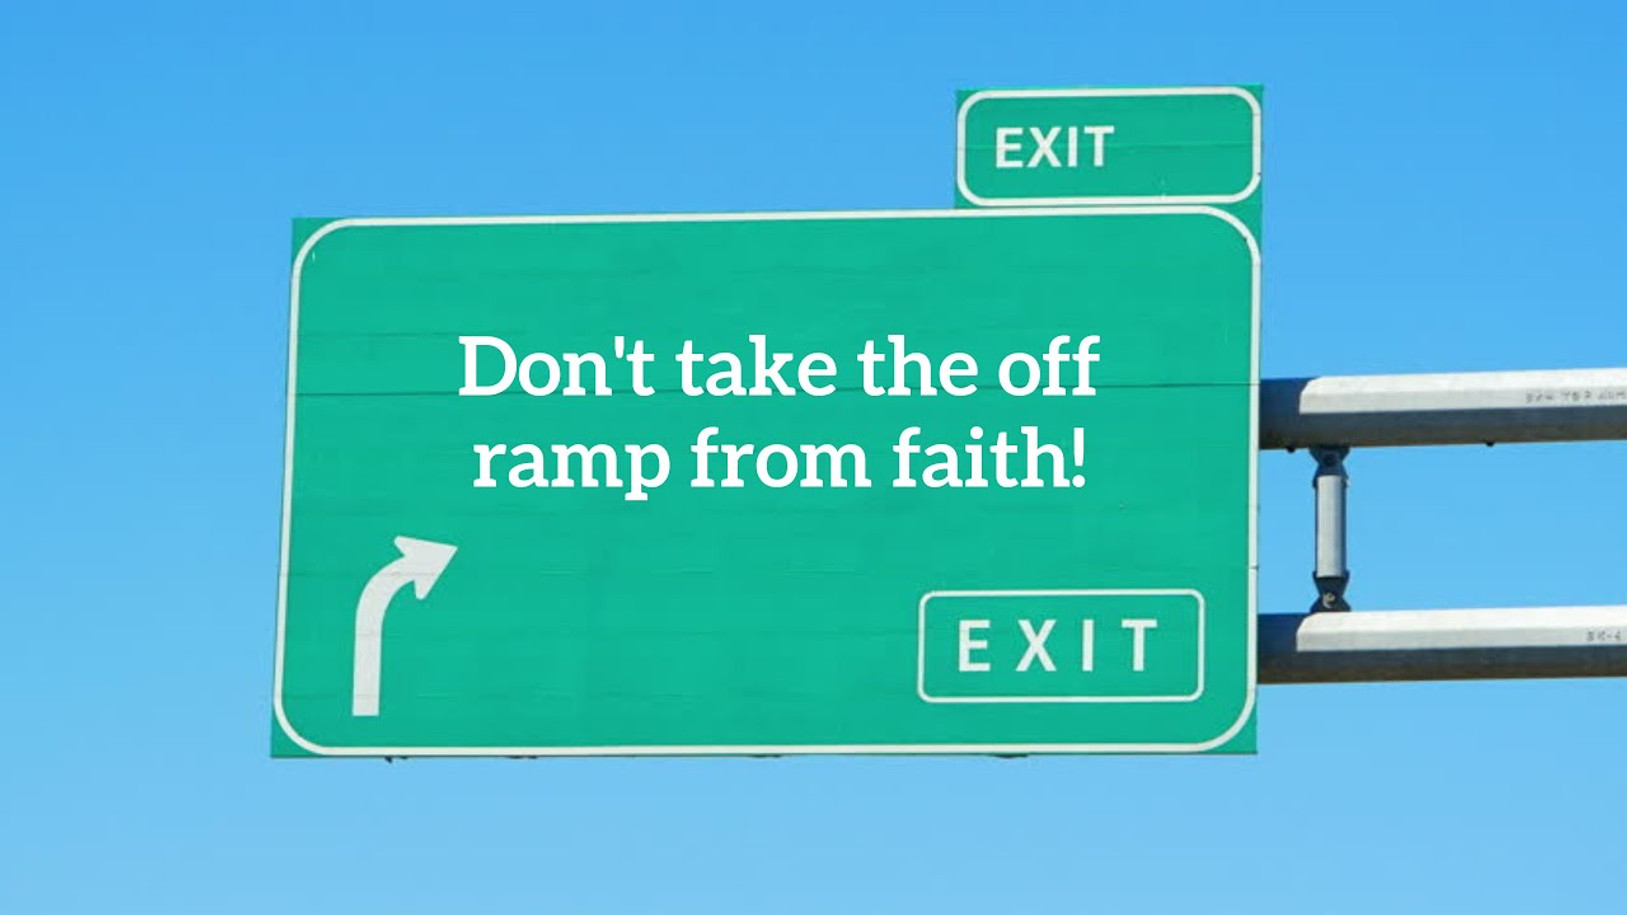 Don't take the off ramp from faith!